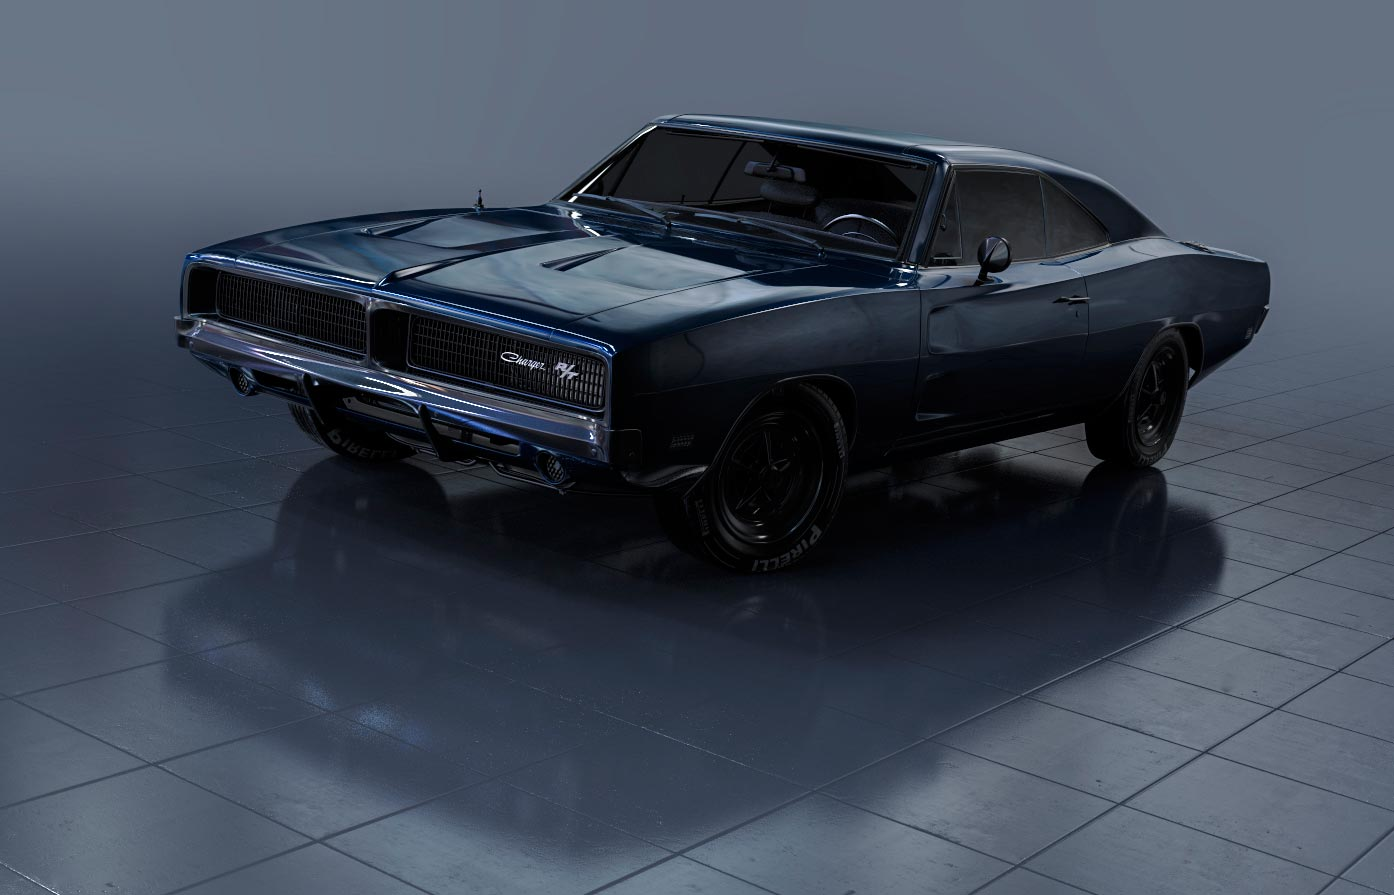 3D Rendering of a Charger